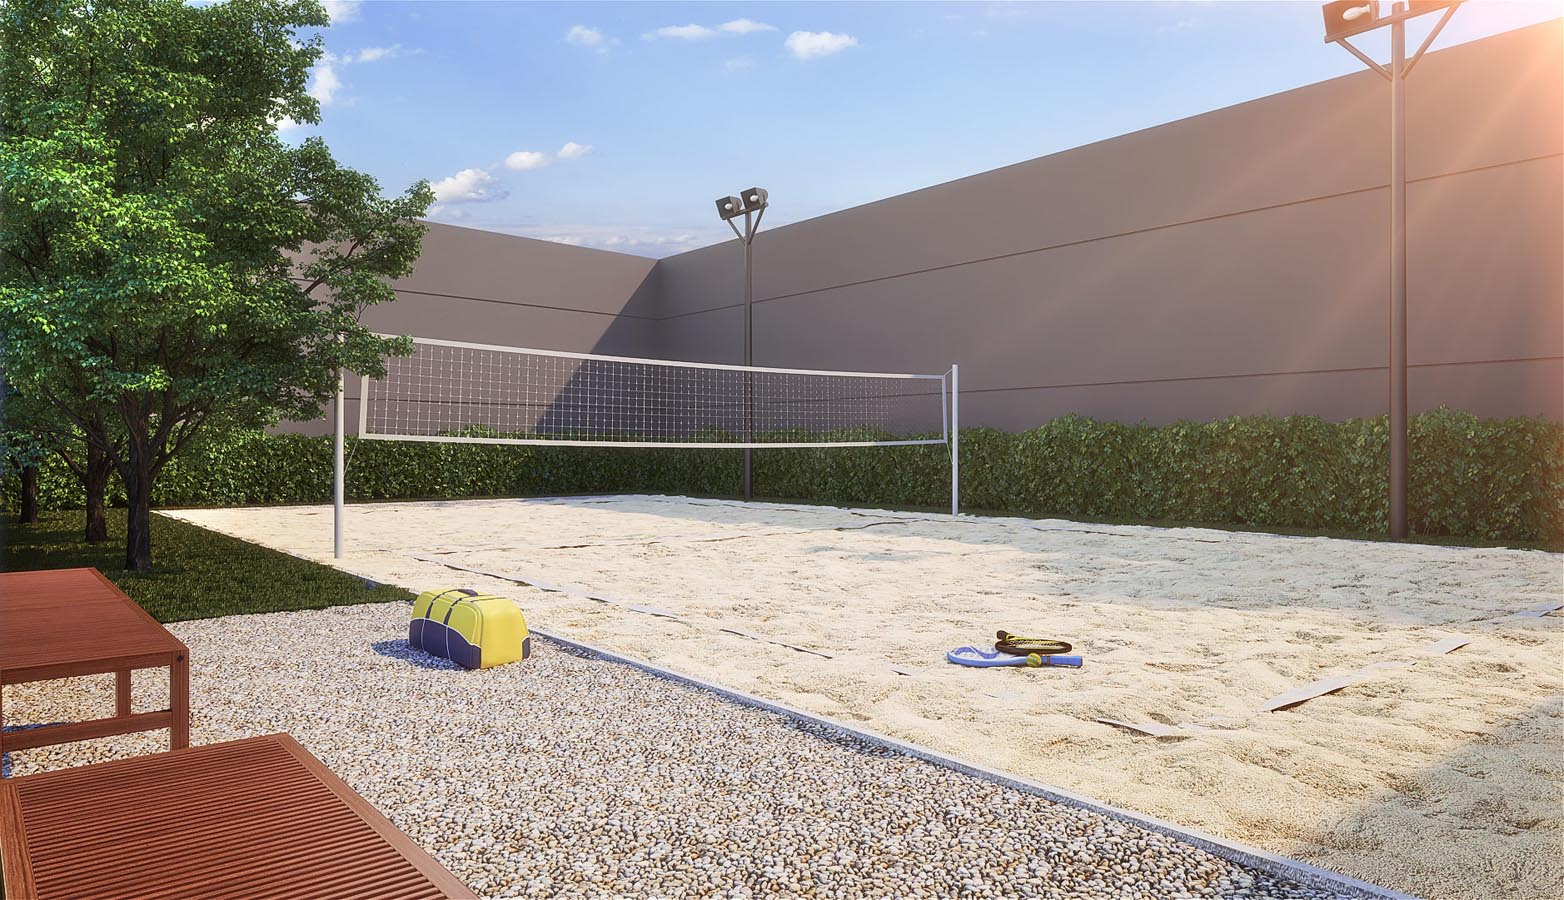 Perspectiva ilustrada do Beach Tennis Grand Duo